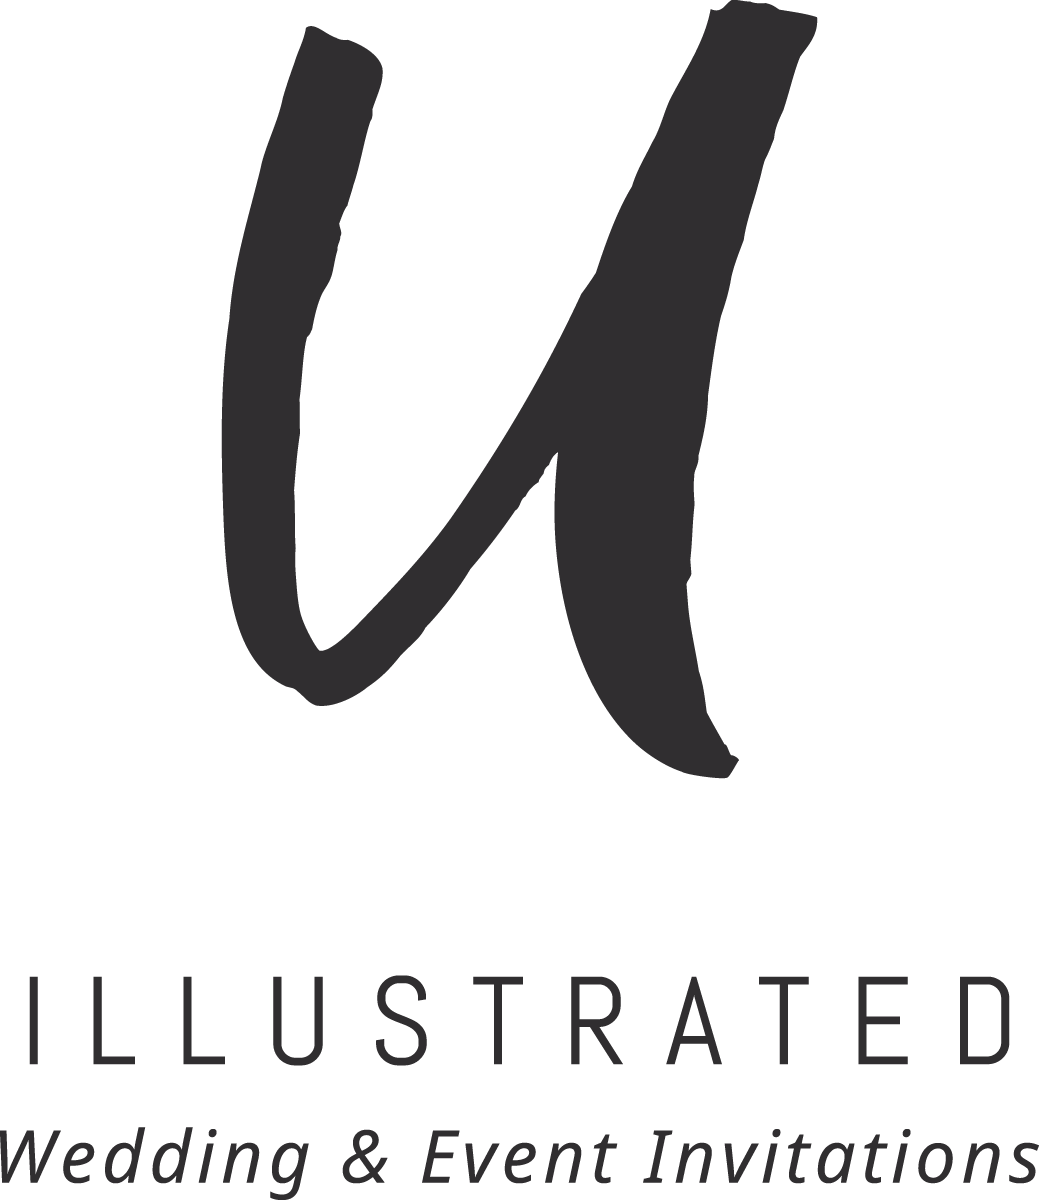 U Illustrated